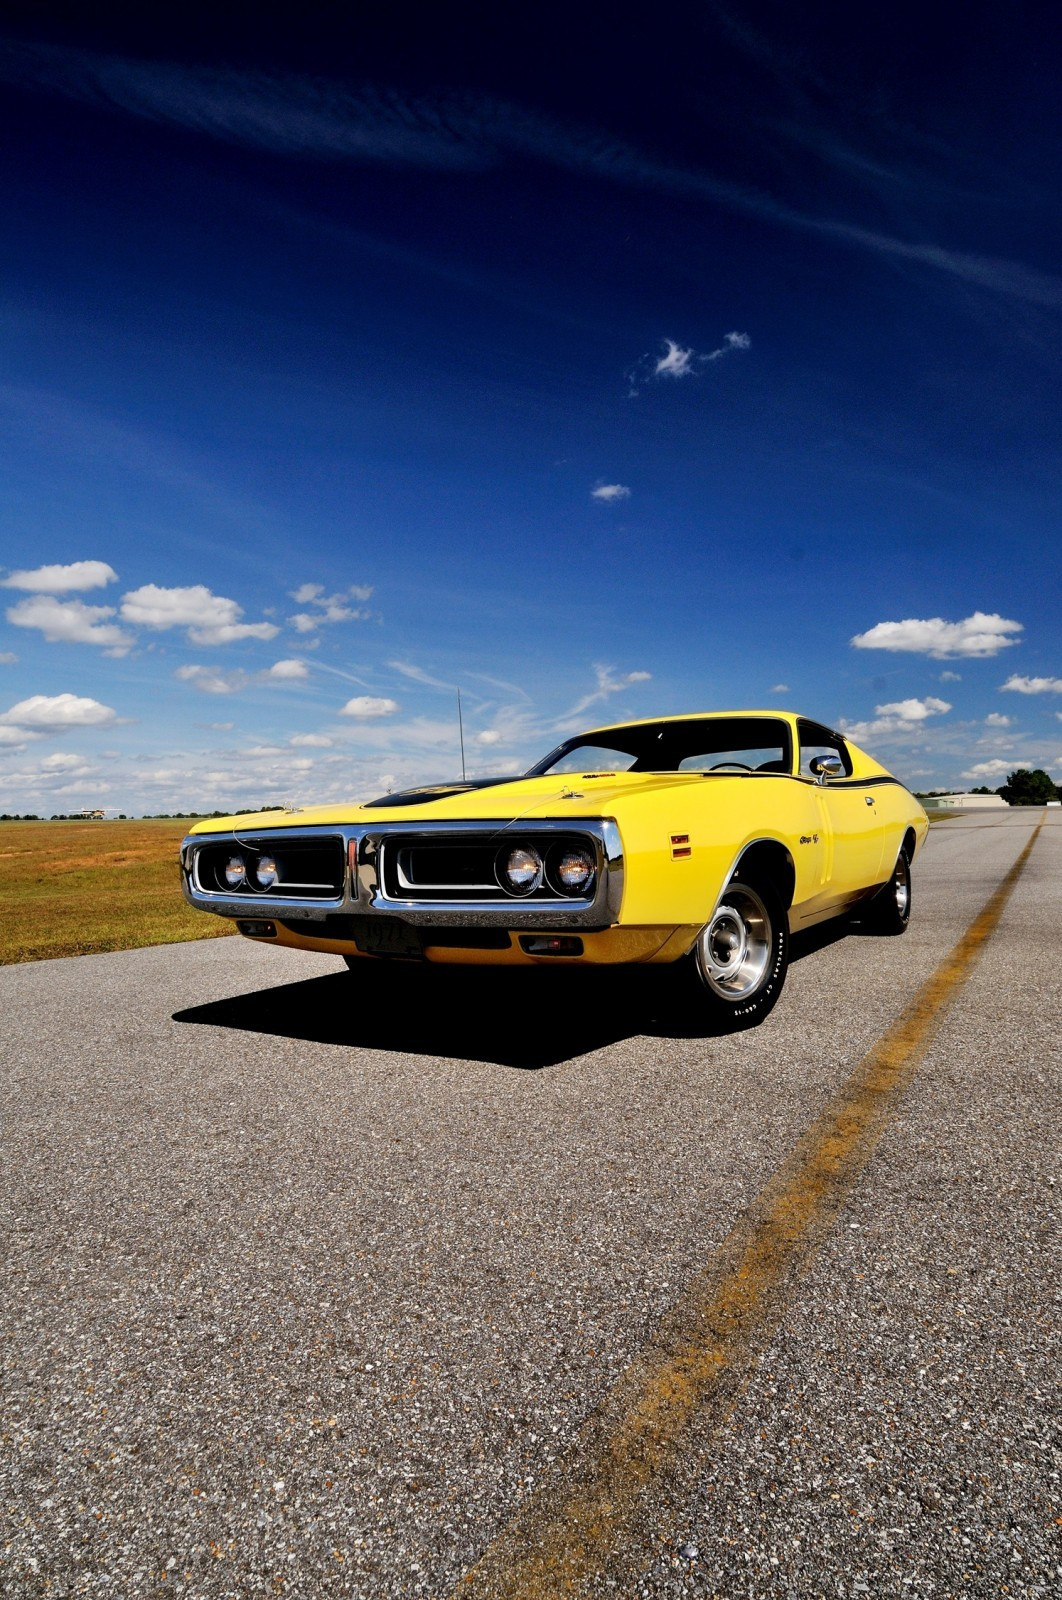 1971 Dodge Charger: 1971 Dodge Hemi Charger RT Lot R216 12 » Car-Revs-Daily.com